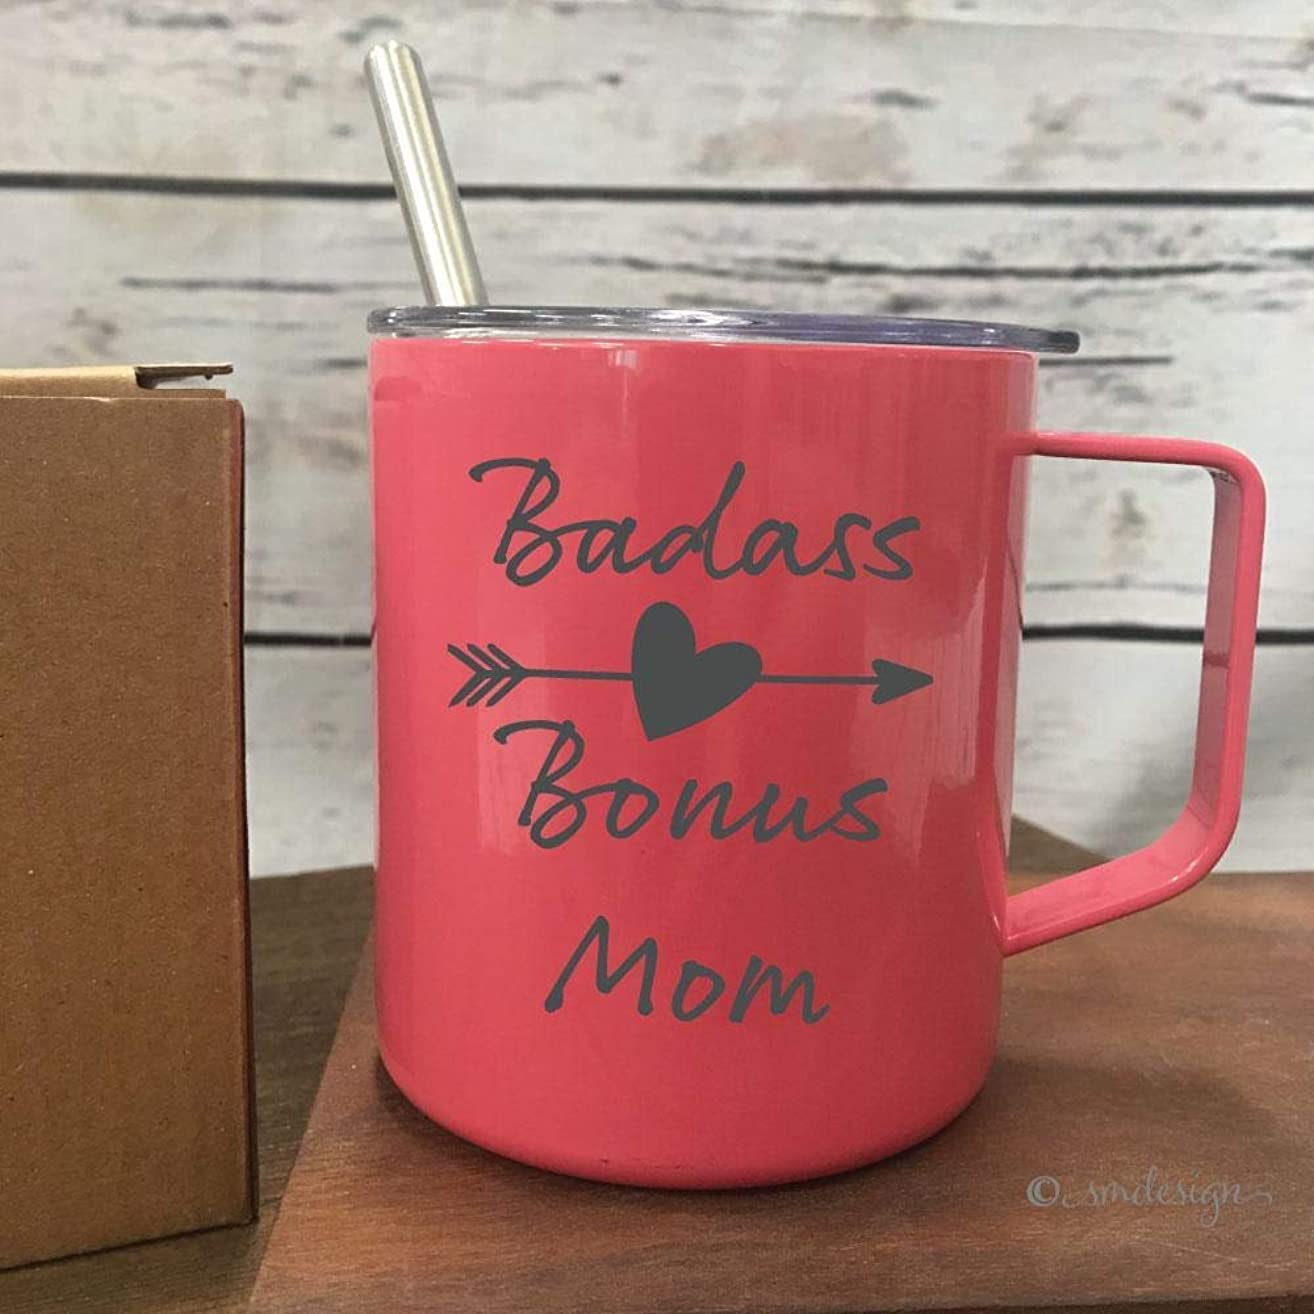 Badass Bonus Mom Coffee Mug- Badass Step Mom Coffee Mug Mothers Day Gift Coffee Drinker Gift For Coffee Drinker Drink Coffee Gift For Mom